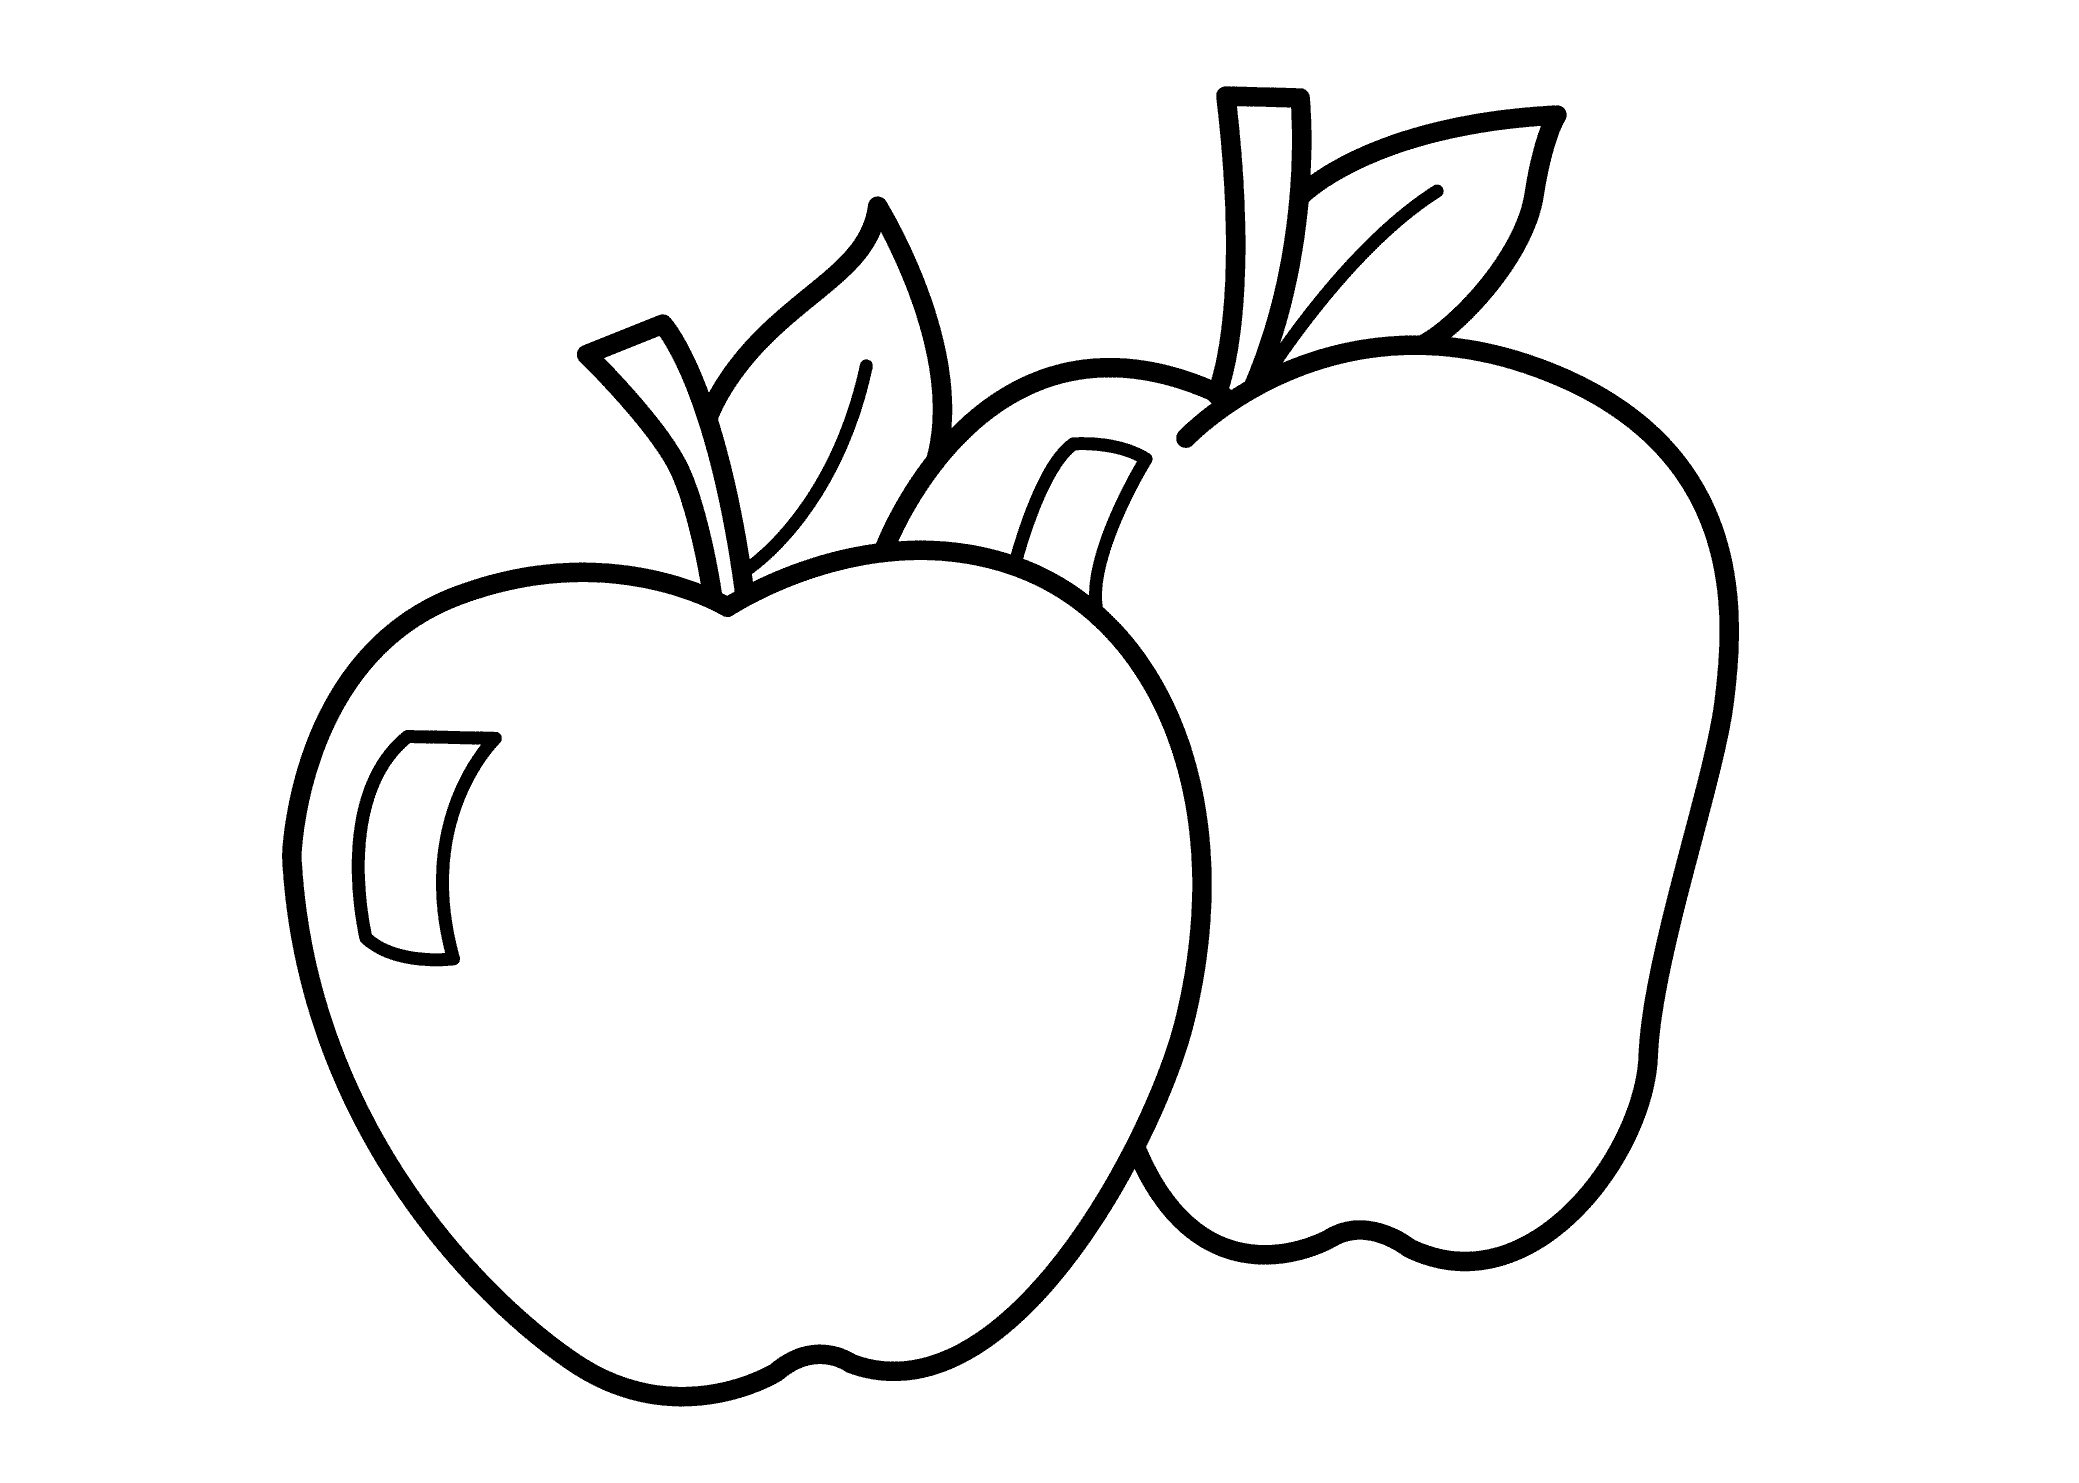 pictures of apples to color free printable apple coloring pages for kids color of to pictures apples